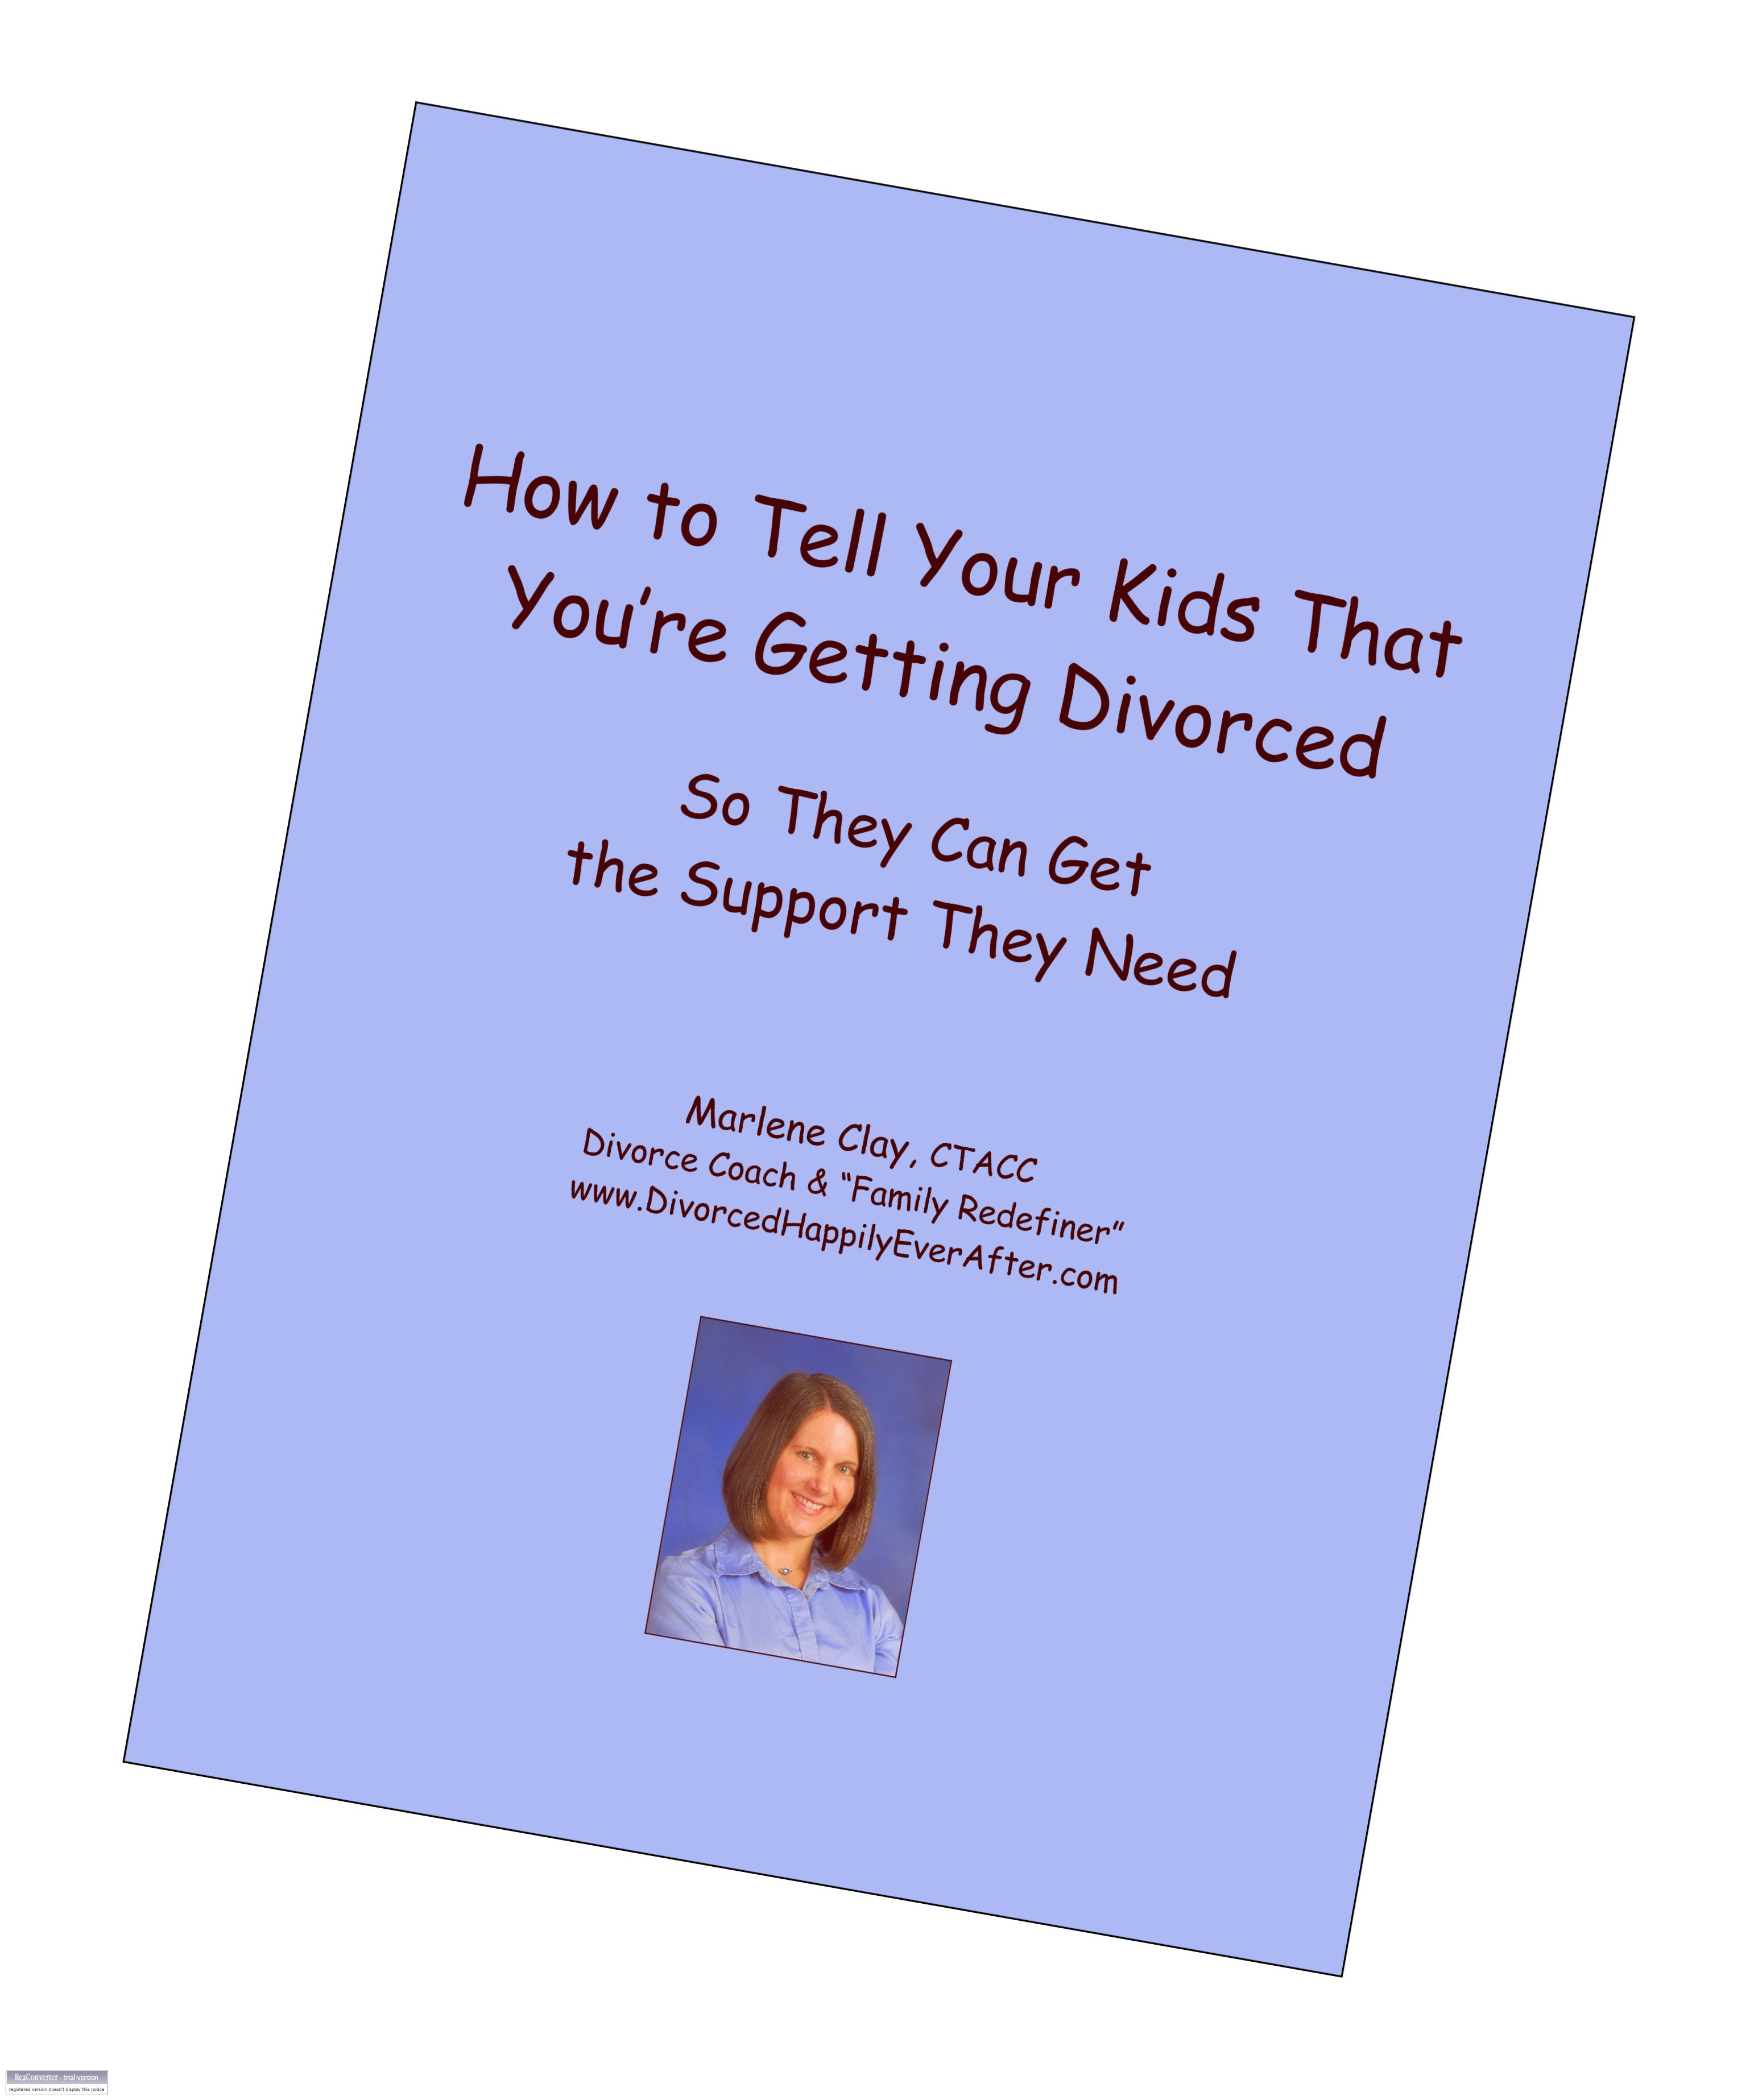 when to tell children you are dating after divorce Dating after divorce: be careful how you tell your kids april 4, 2012 2 comments written by rosalind sedacca we all know divorce creates havoc in any family's life, especially when children are involved.